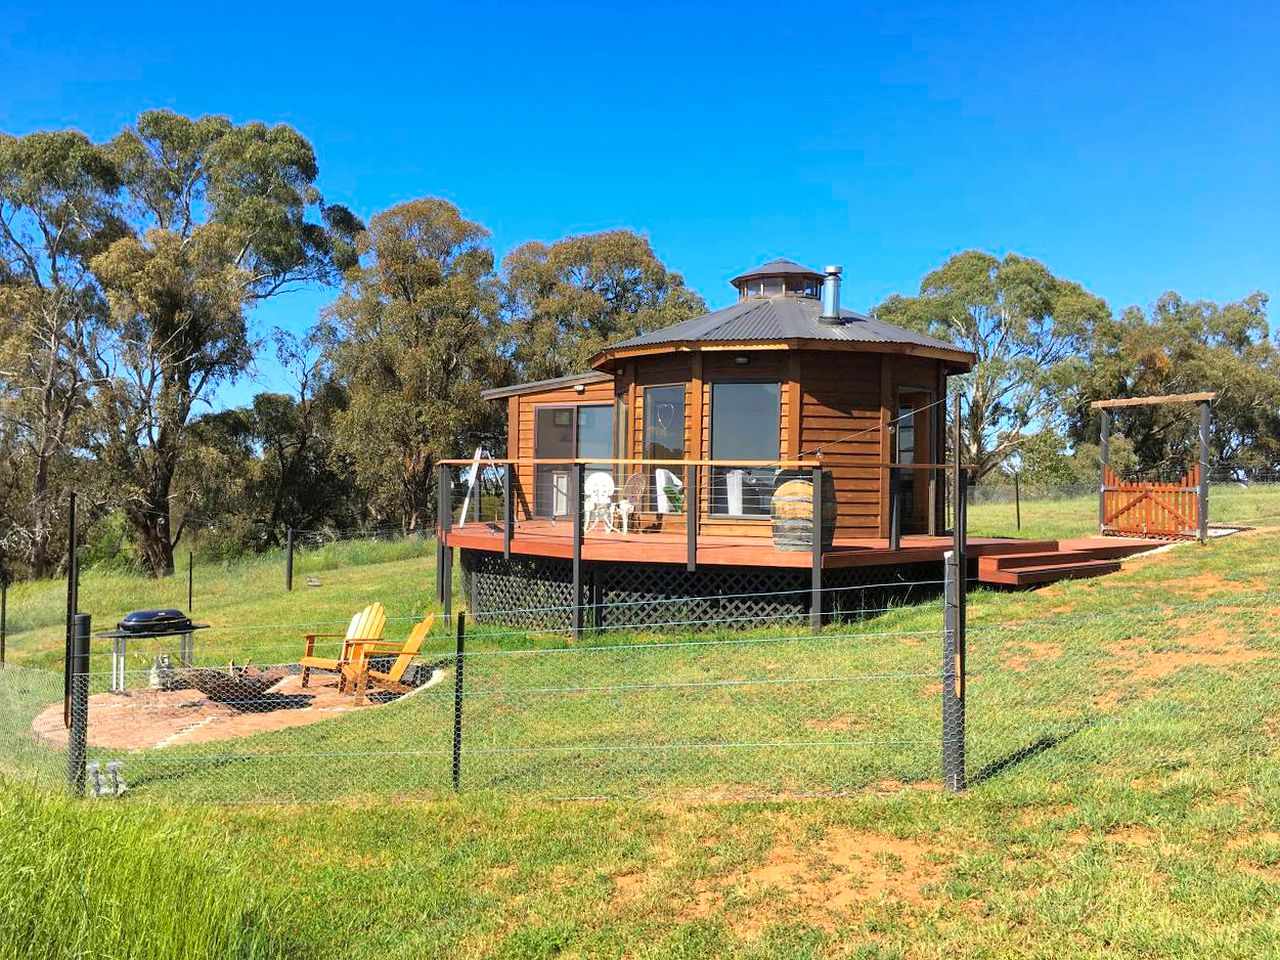 Yurts (Forest Reefs, New South Wales, Australia)